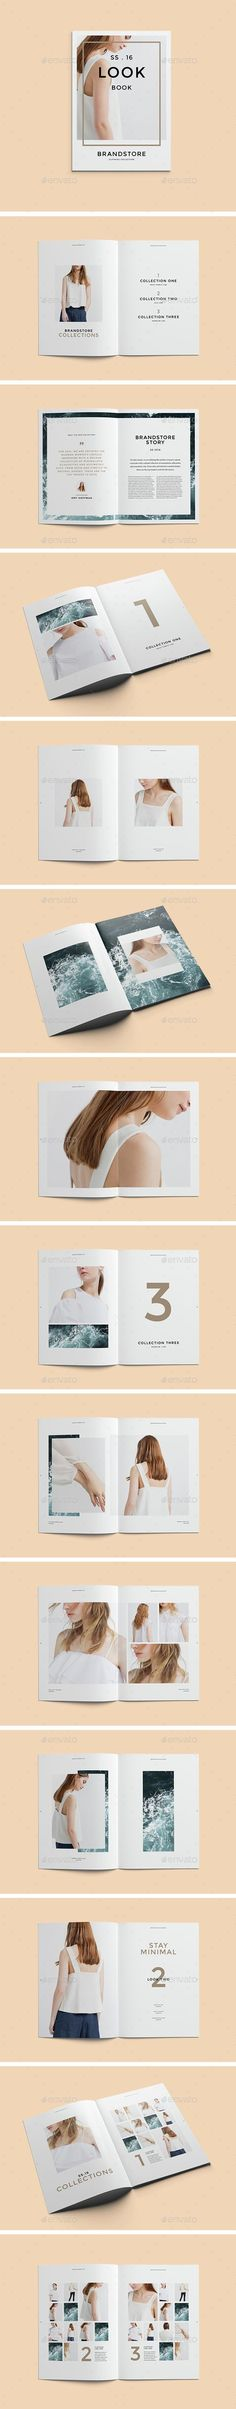 Fashion portfolio book layout editorial design for 2019 Portfolio Design, Mode Portfolio Layout, Fashion Portfolio Layout, Portfolio Booklet, Editorial Logo, Editorial Design, Editorial Layout, Editorial Hair, Magazine Layout Design